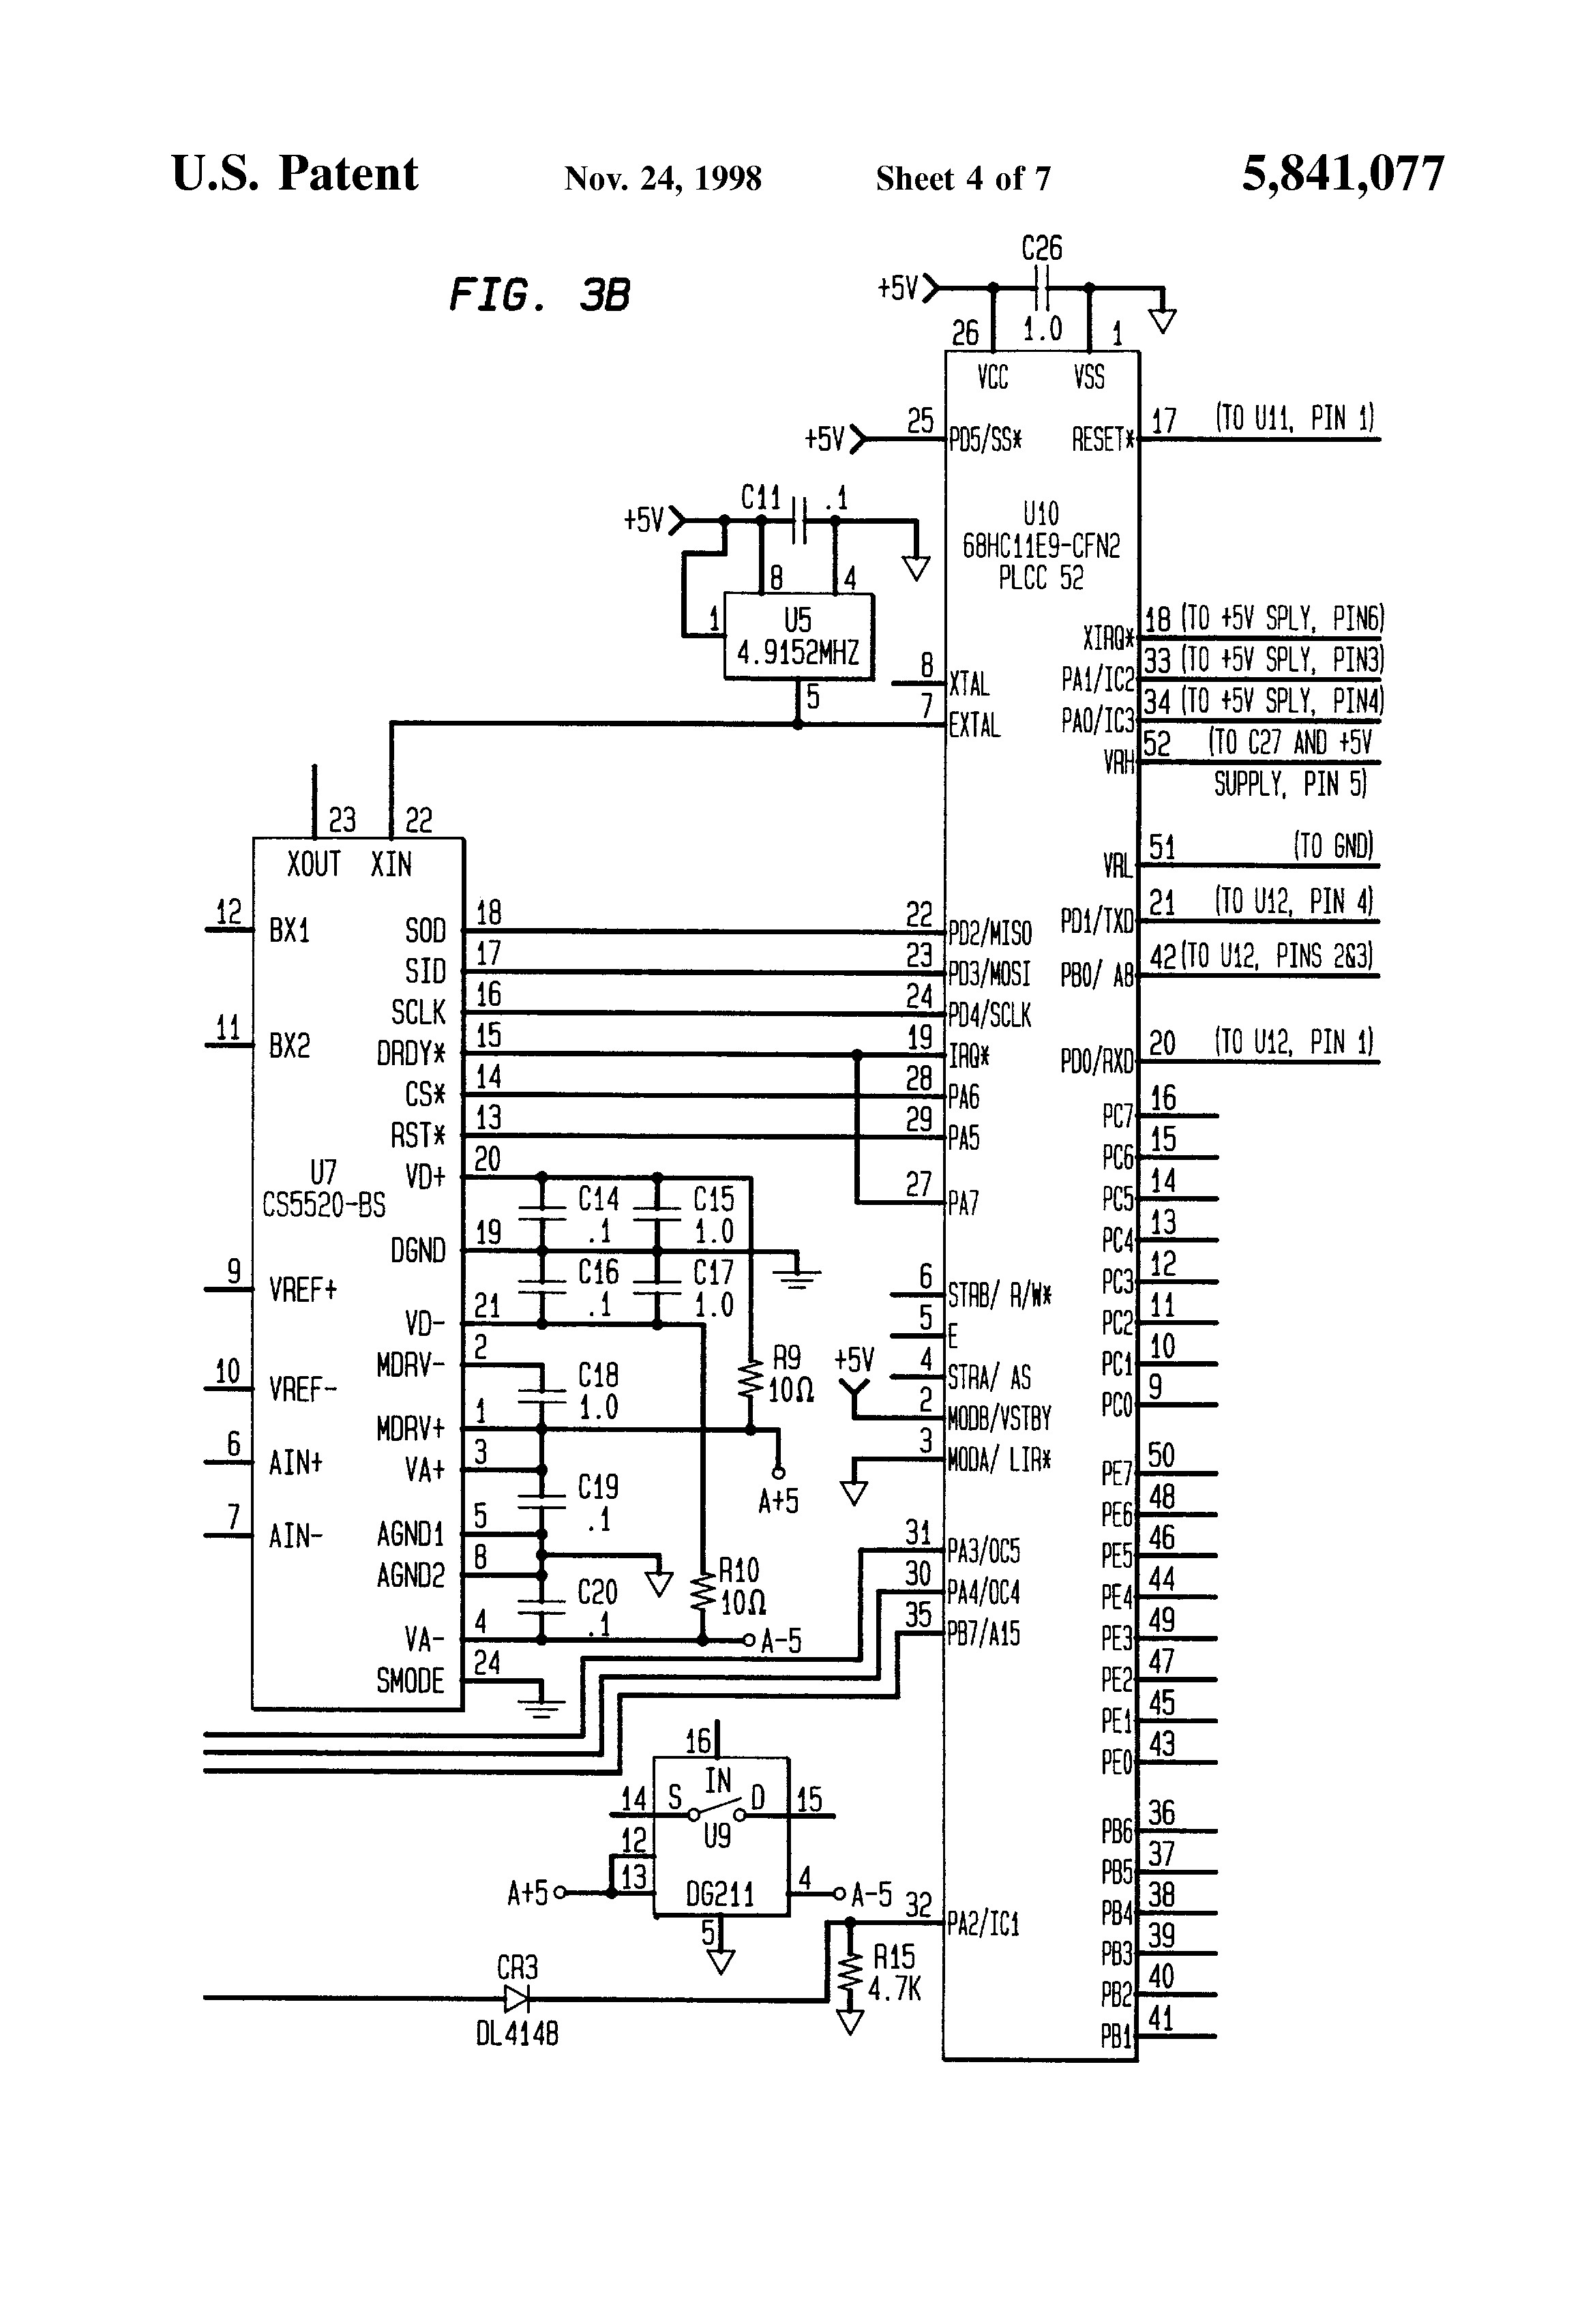 white rodgers 50e47 843 wiring diagram Download-Load Cell Junction Box Wiring Diagram Sample White Rodgers 50e47 843 Wiring Diagram Image 1-s